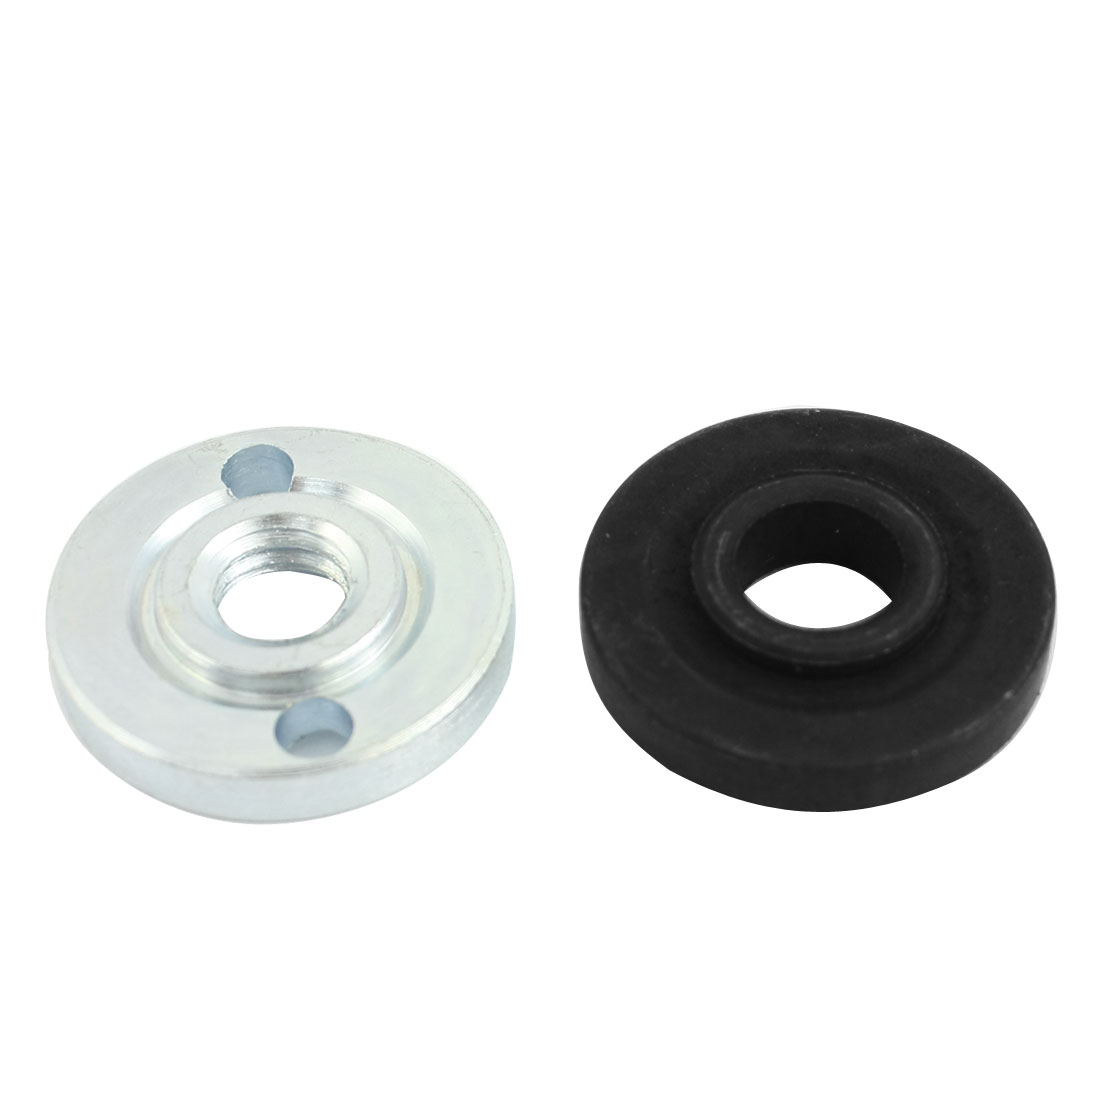 Replacement Part Inner Outer Flange for Hita 100 Angle Grinder